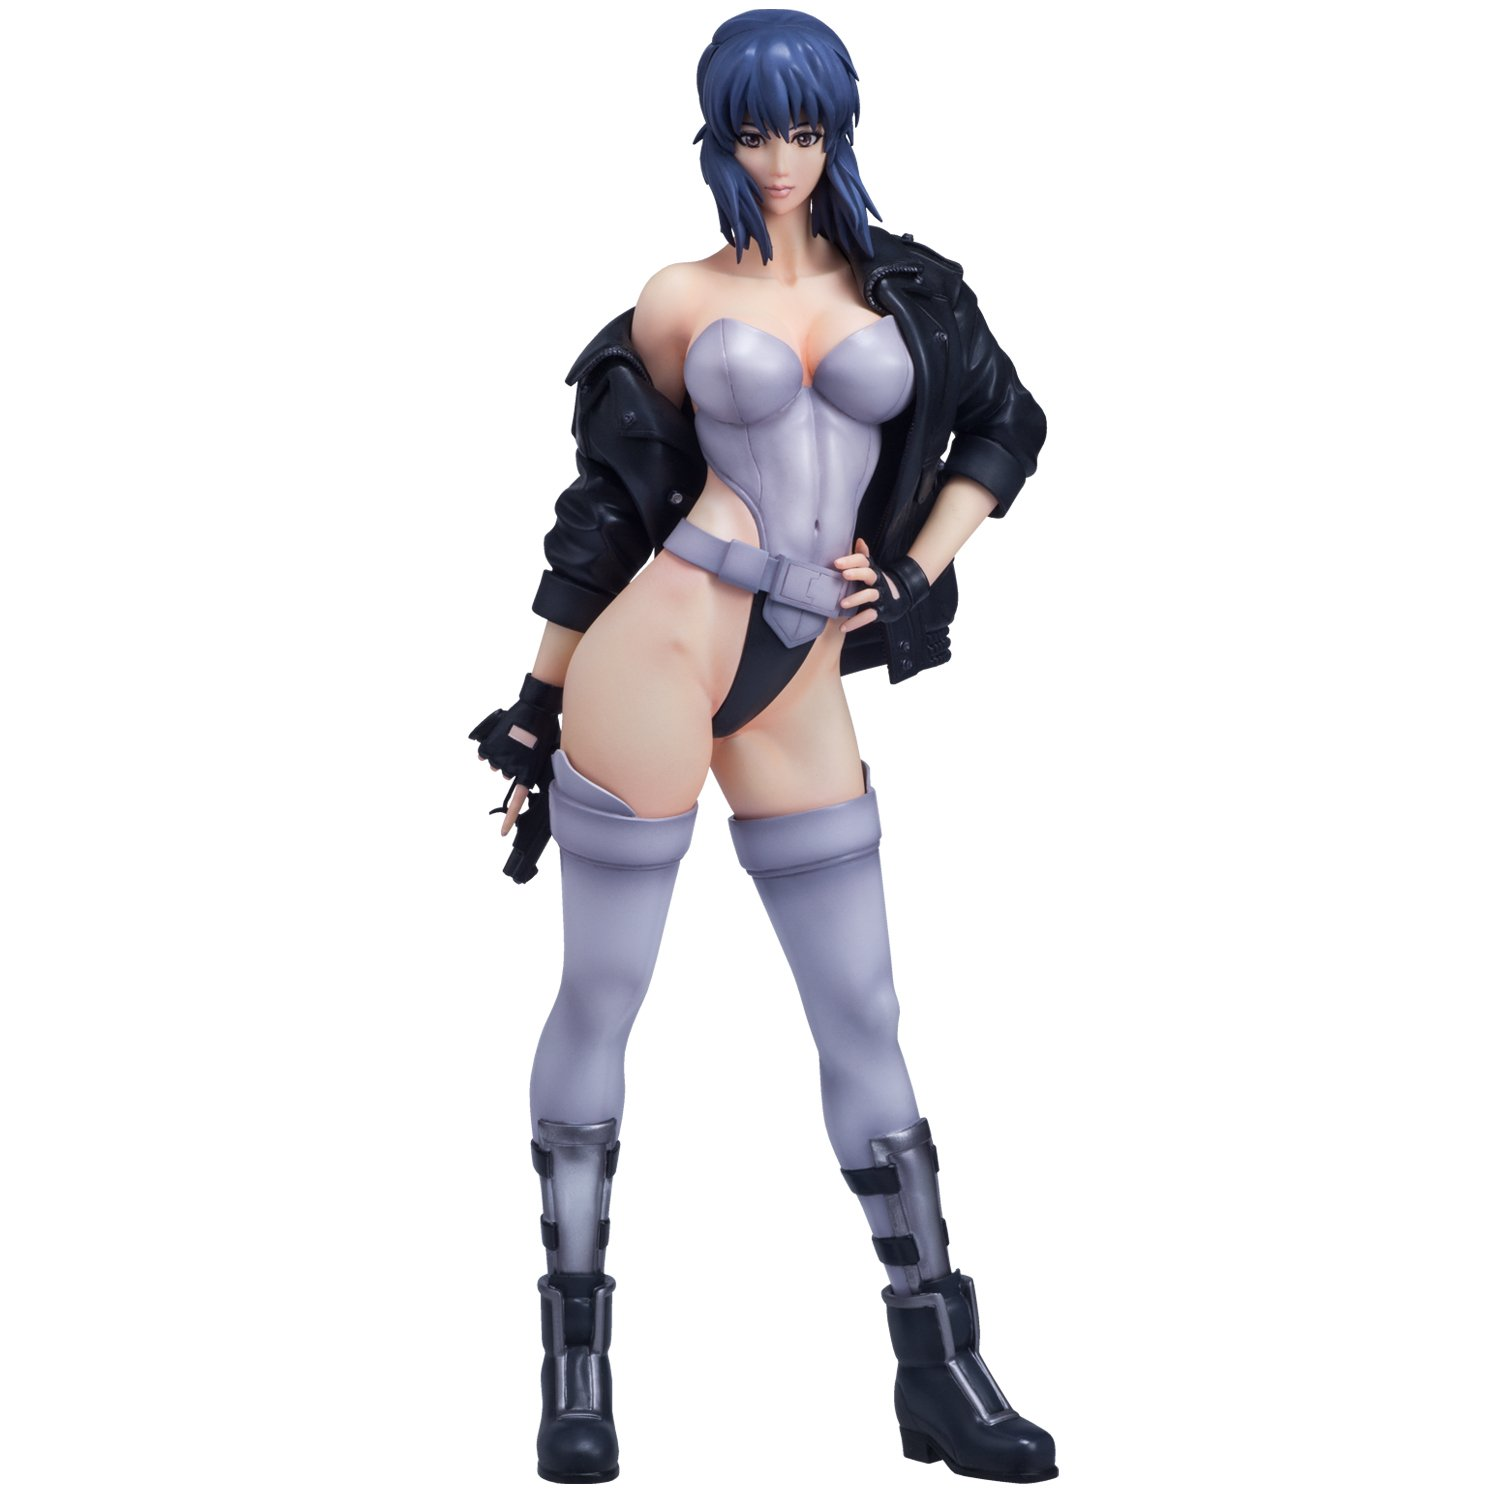 Hdge Technical Statue No 6 - Ghost in the Shell S.A.C: Motoko Kusanagi  (2017 Version)